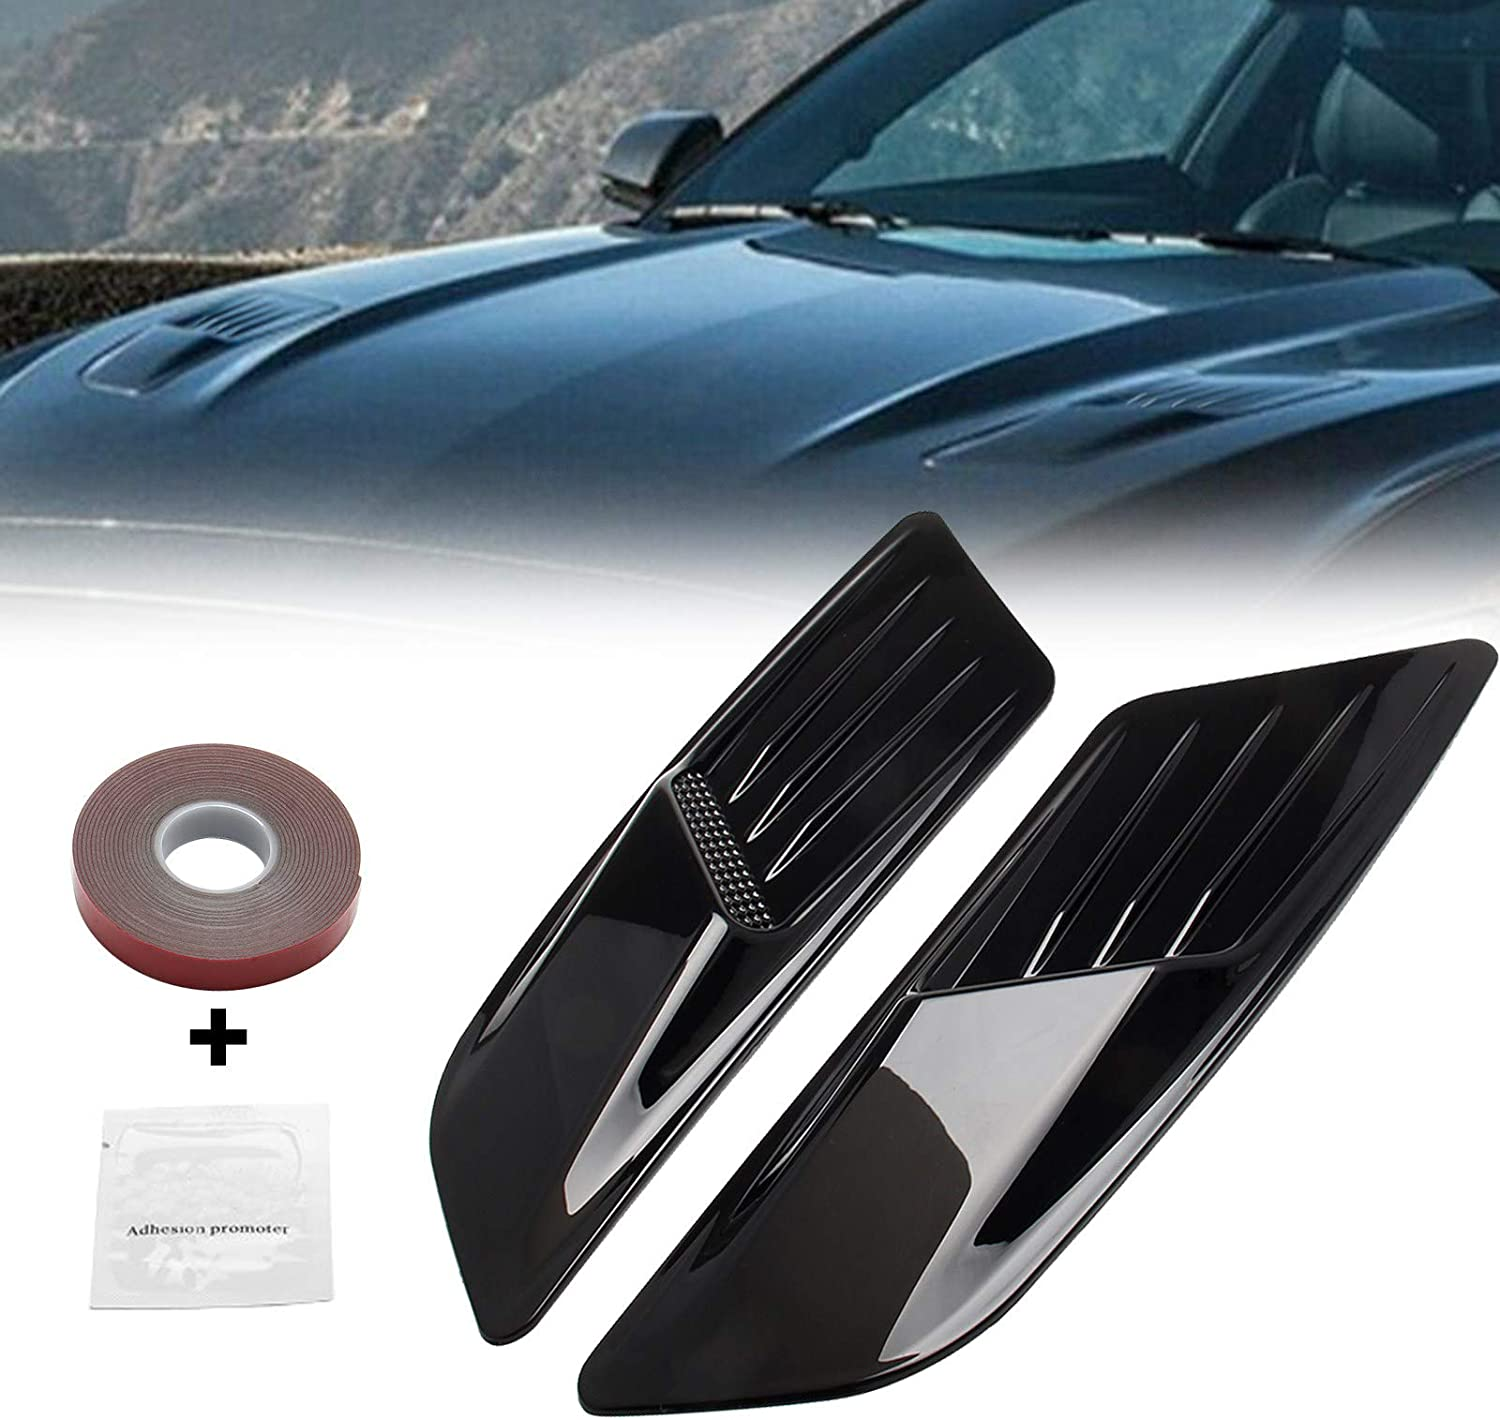 Artudatech Front Hood Air Vent Molding for Some reservation Cover Sale special price Trim Ford Musta